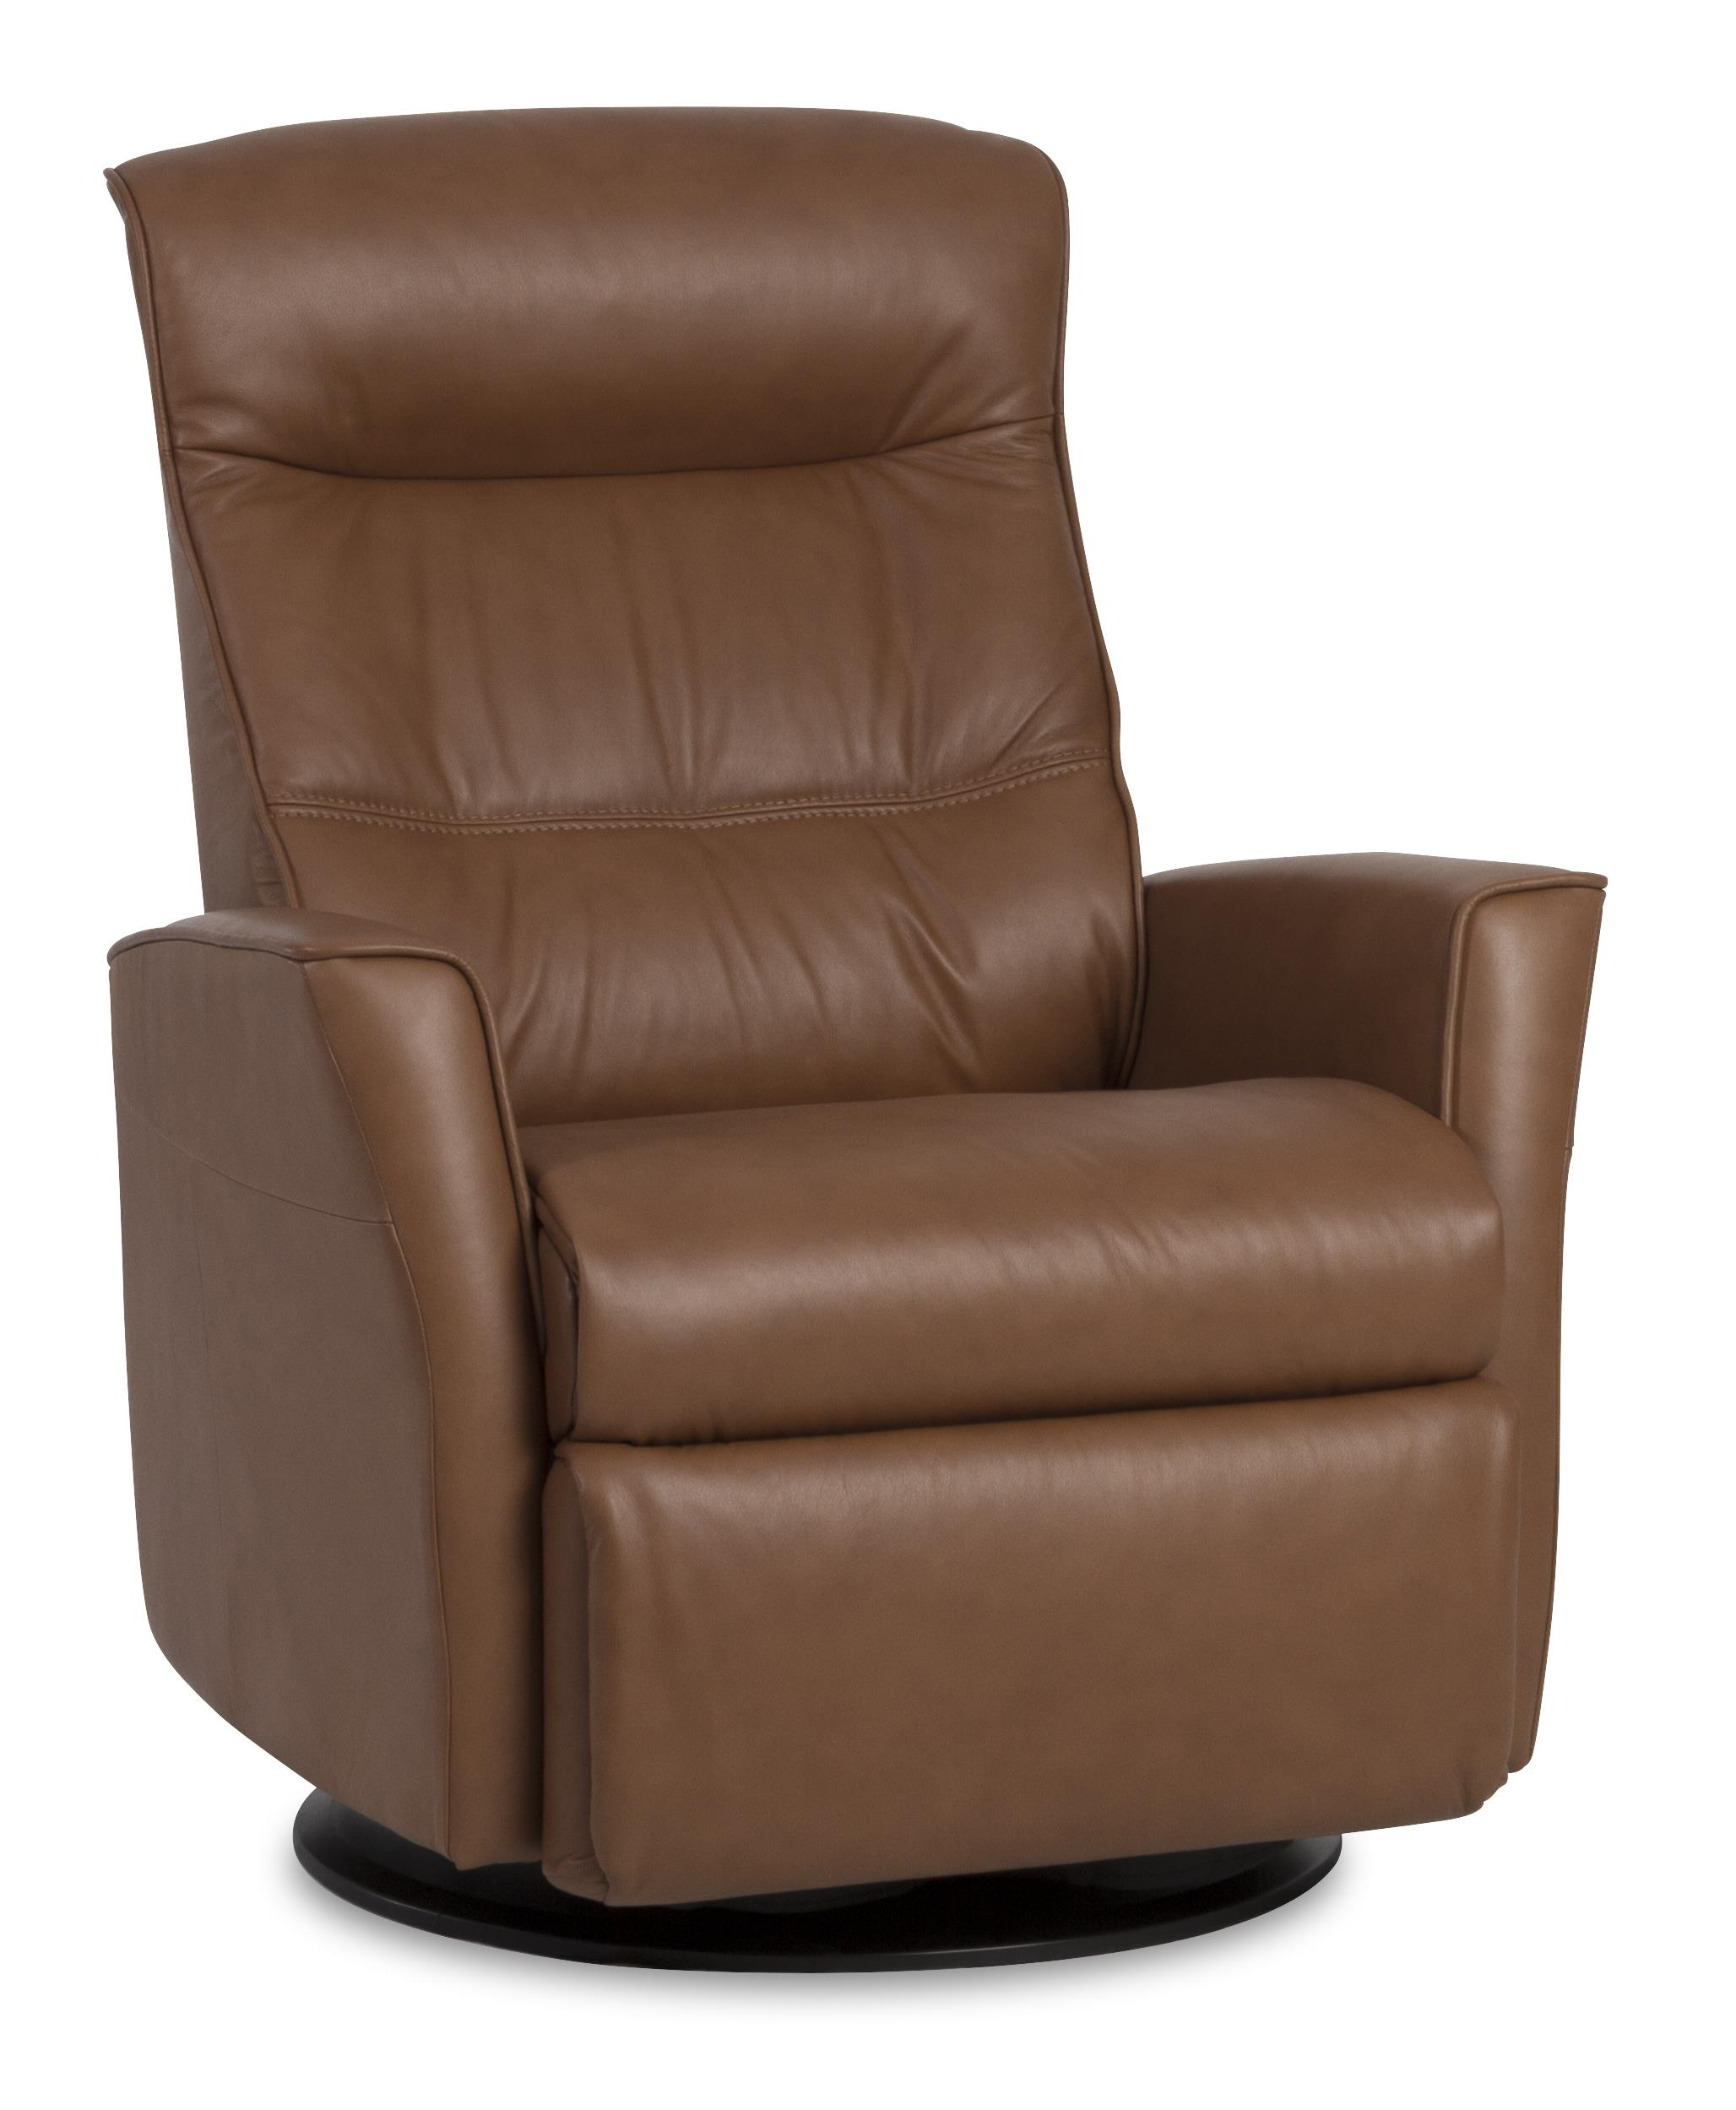 Crown Large Relaxer Recliner by IMG Norway at Jordan's Home Furnishings